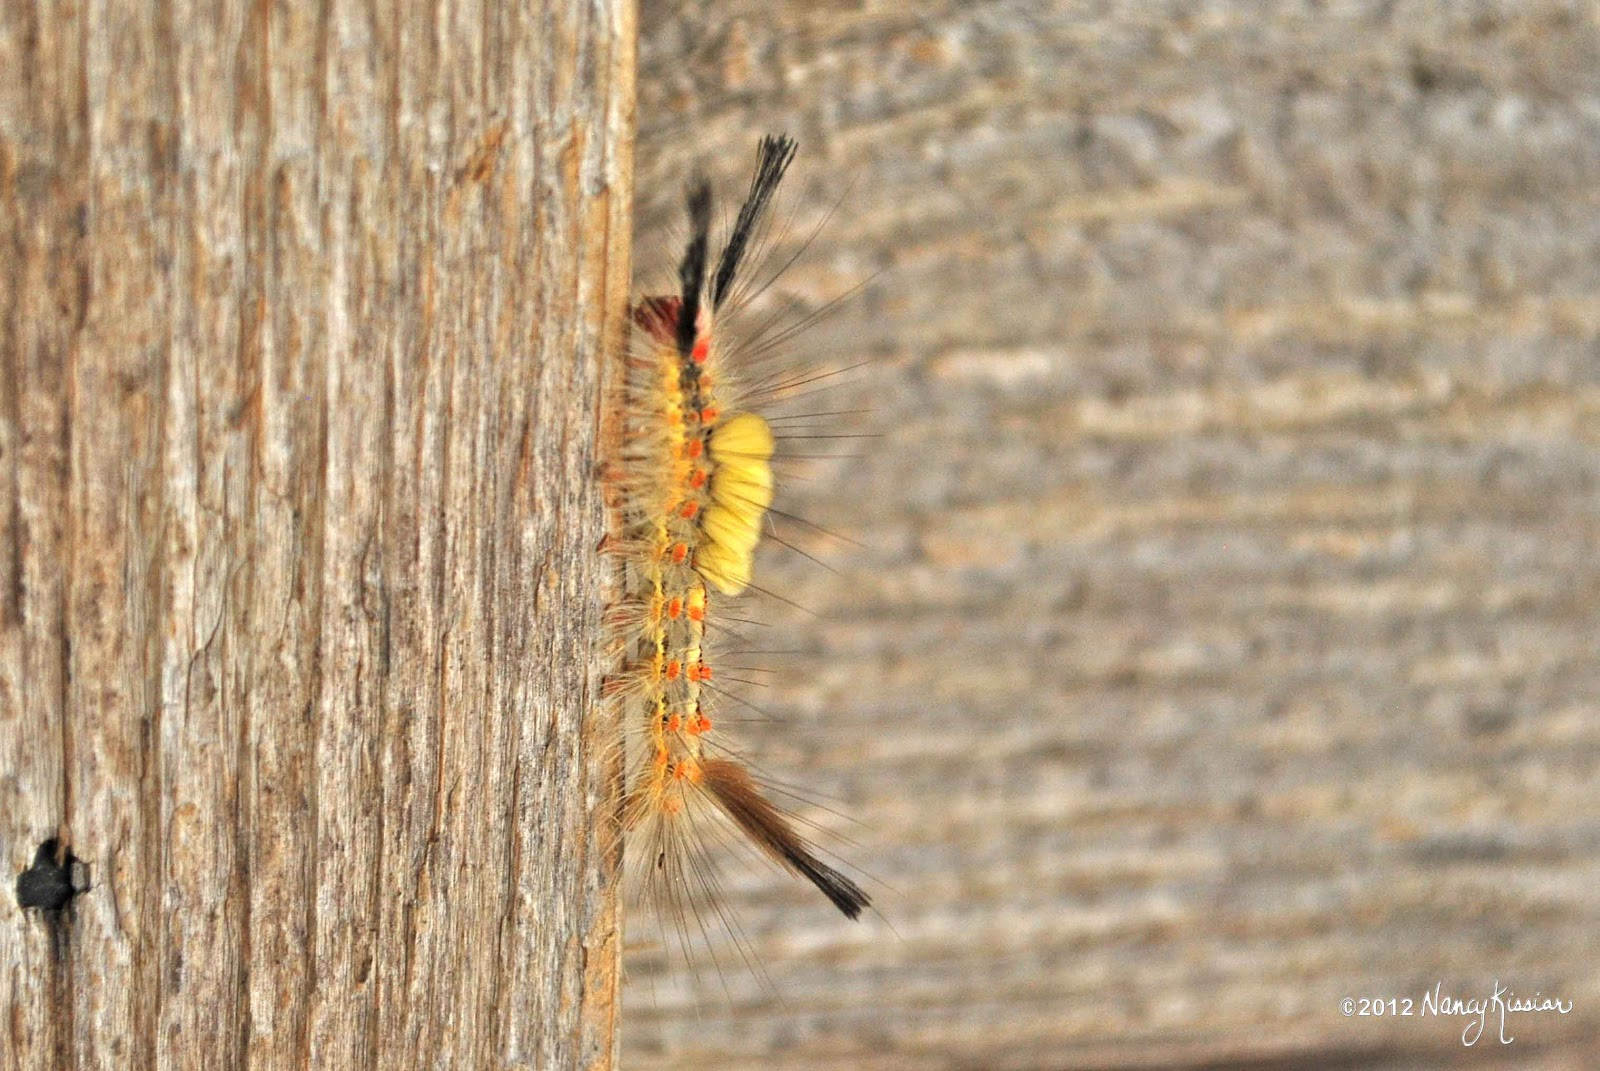 how to get rid of wooly worms